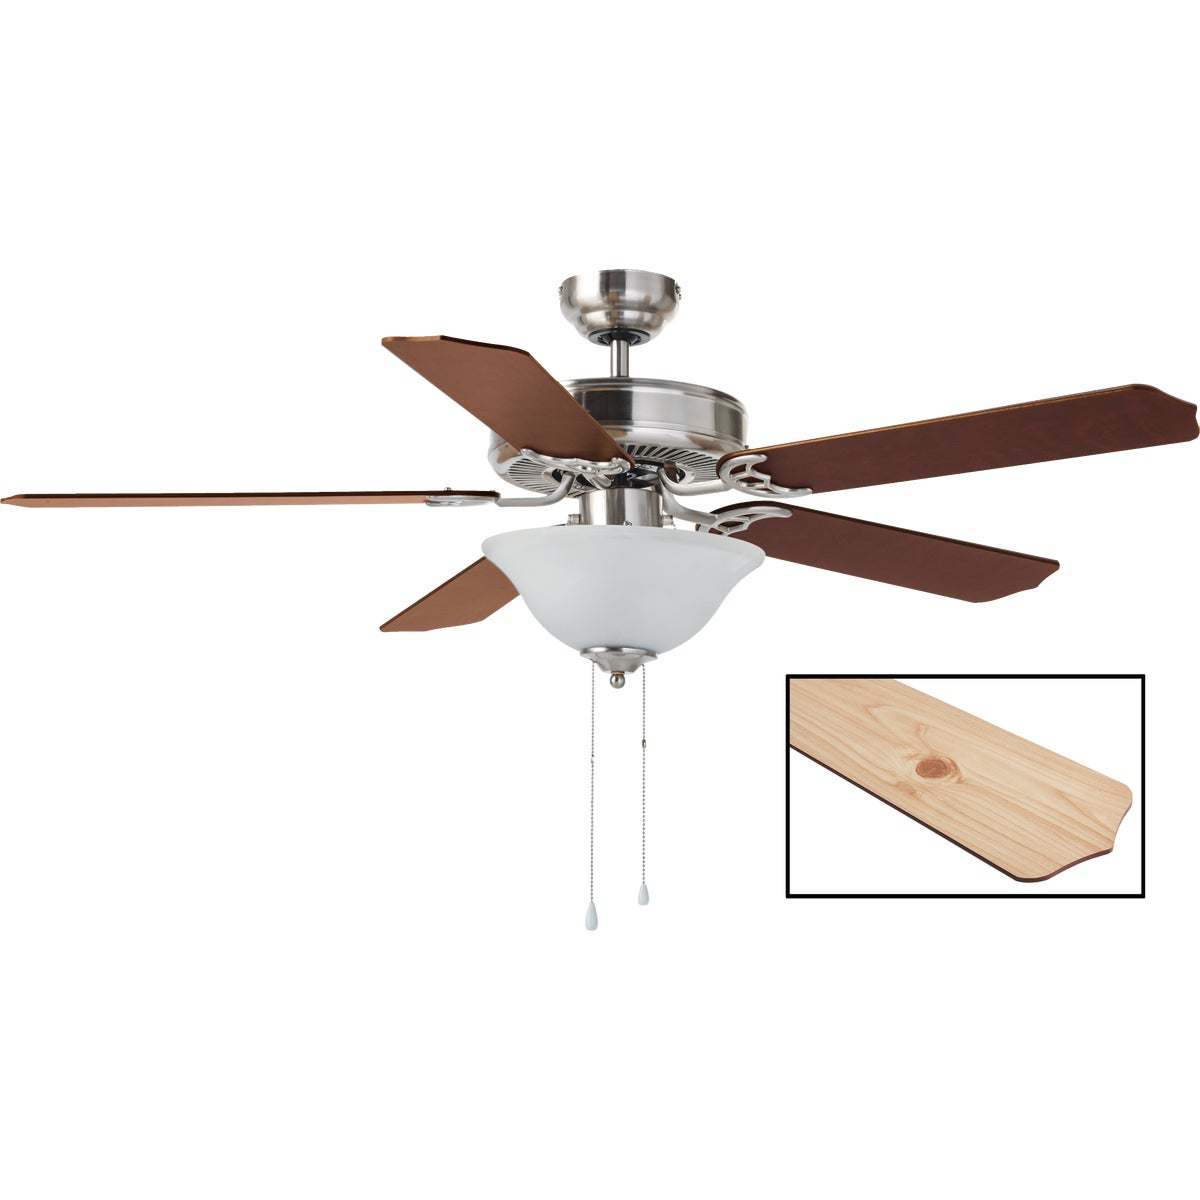 "52"" BAYLOR BN CEIL FAN - CF52BAY5BN by Canarm Gs"